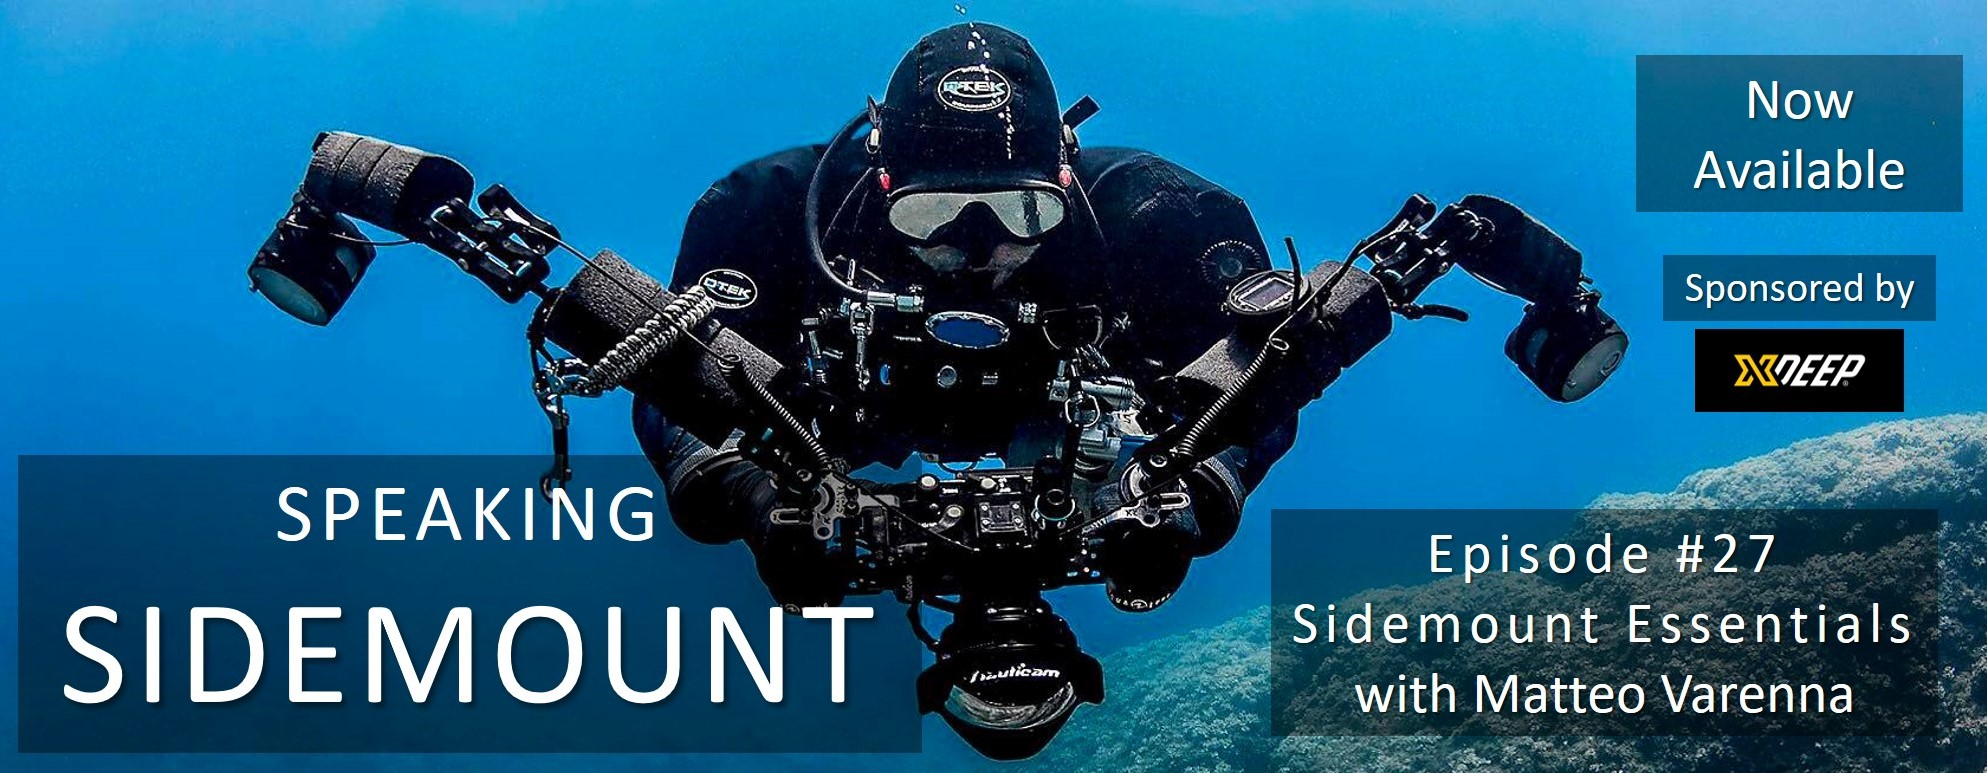 Speaking Sidemount Cover 1920x480 (Ep27).jpg